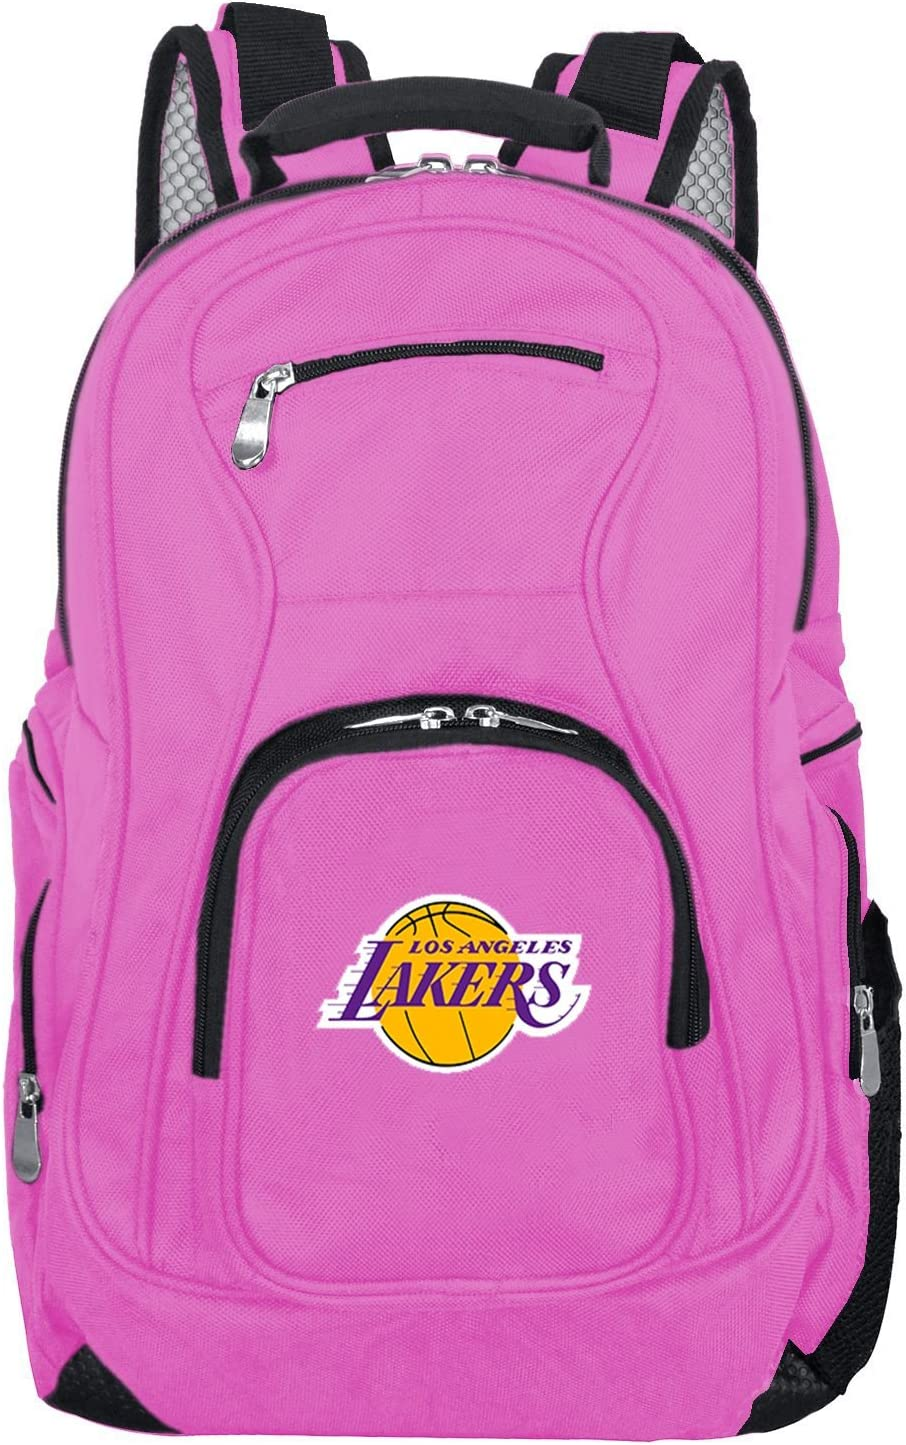 NBA Laptop Backpack, 19-inches, Pink